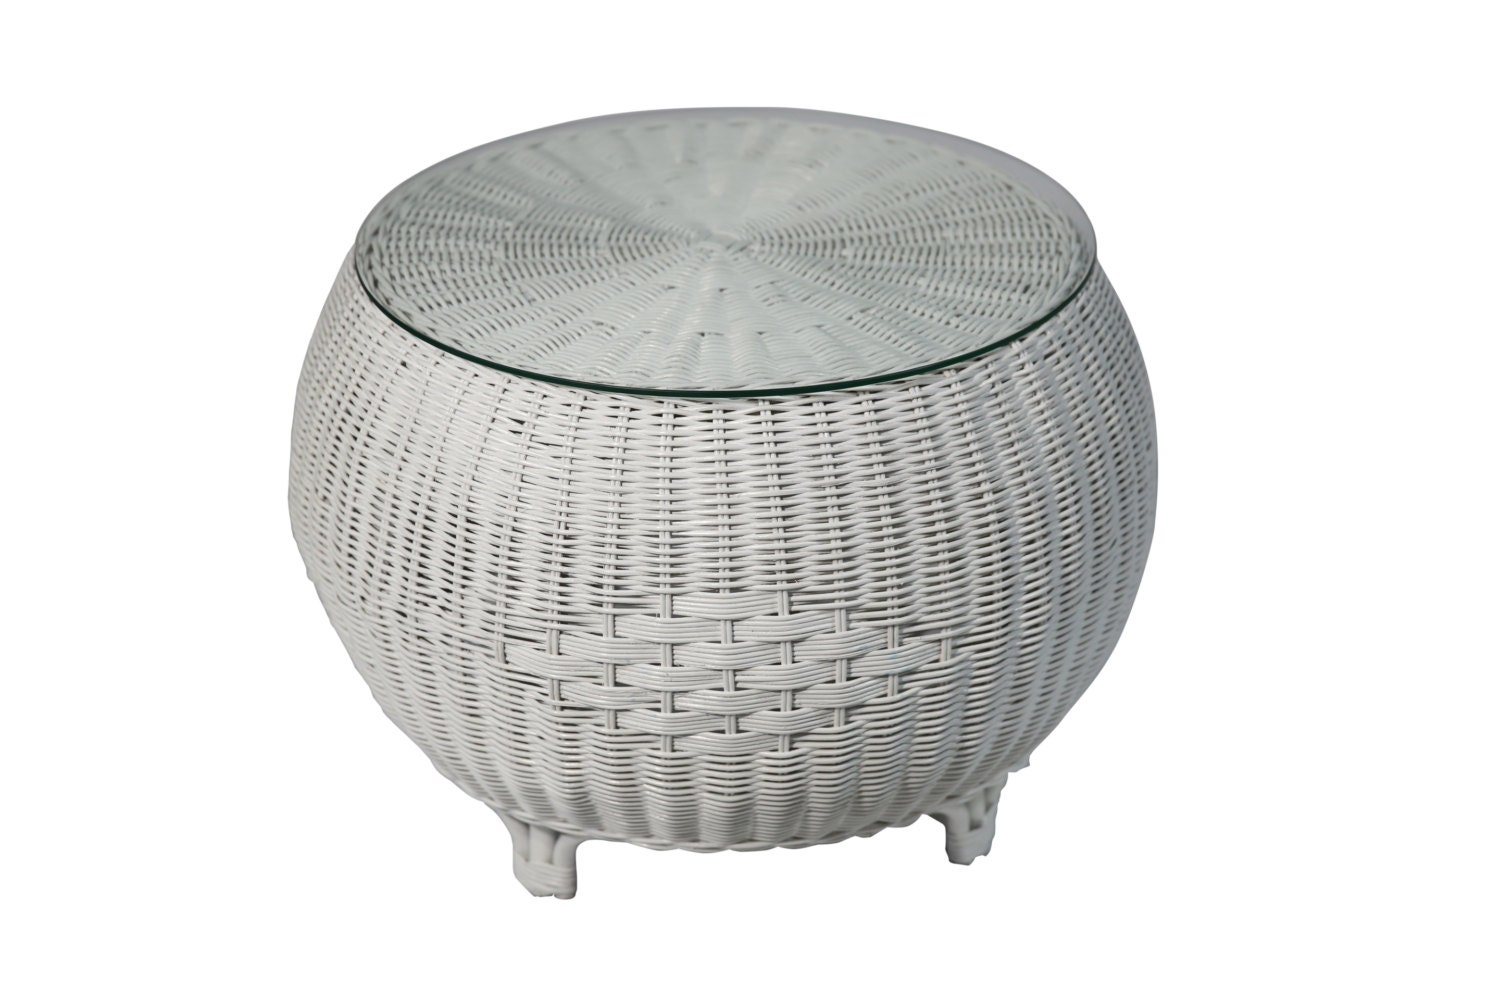 Rattan round coffee table in white White wicker coffee table